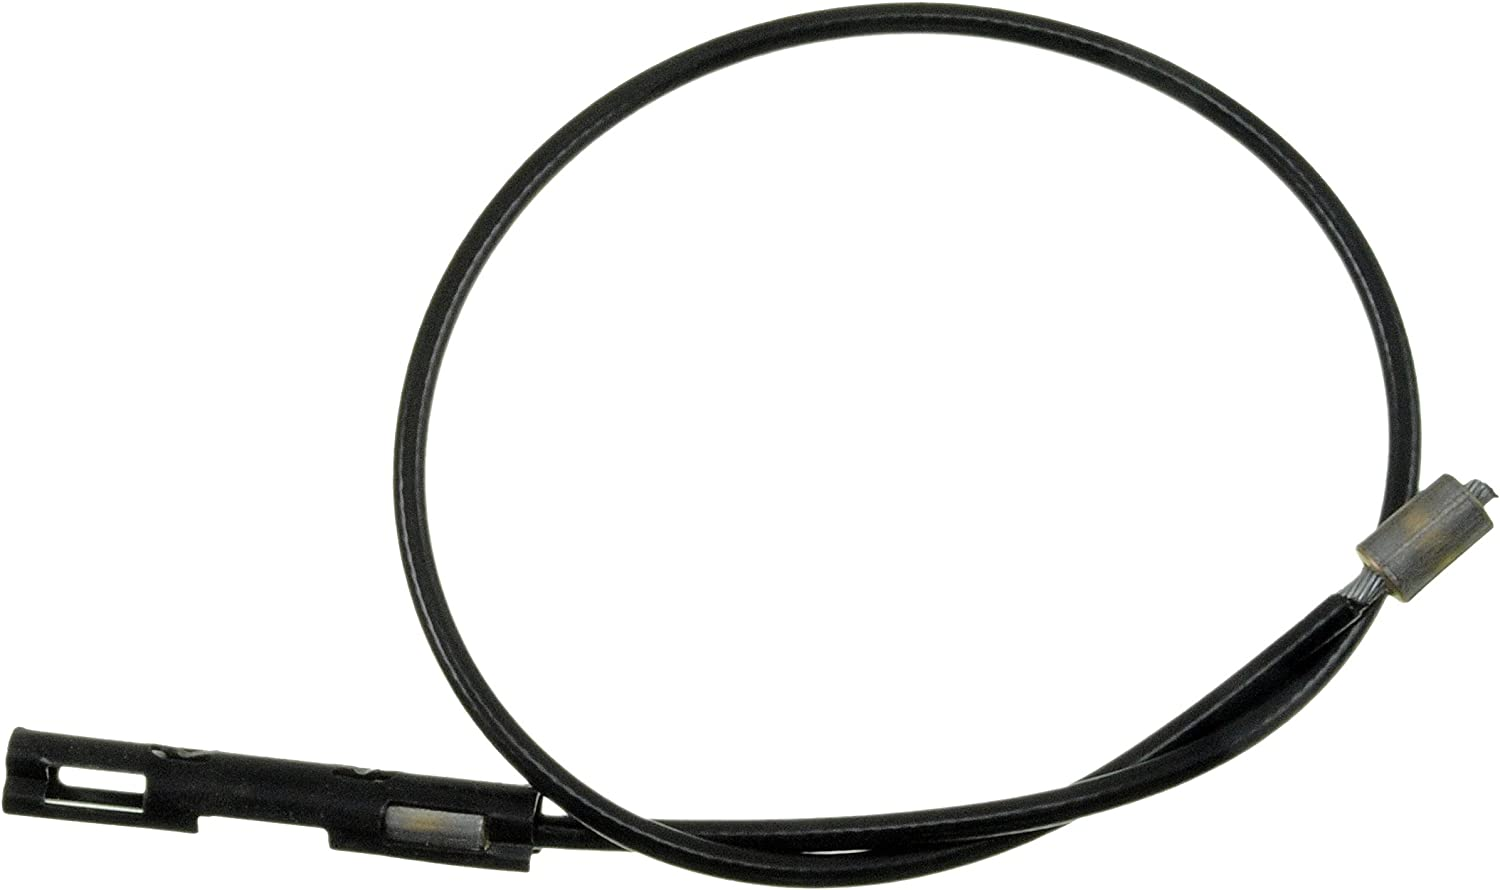 We OFFer at cheap prices Dorman C660291 Parking Brake Cable 55% OFF